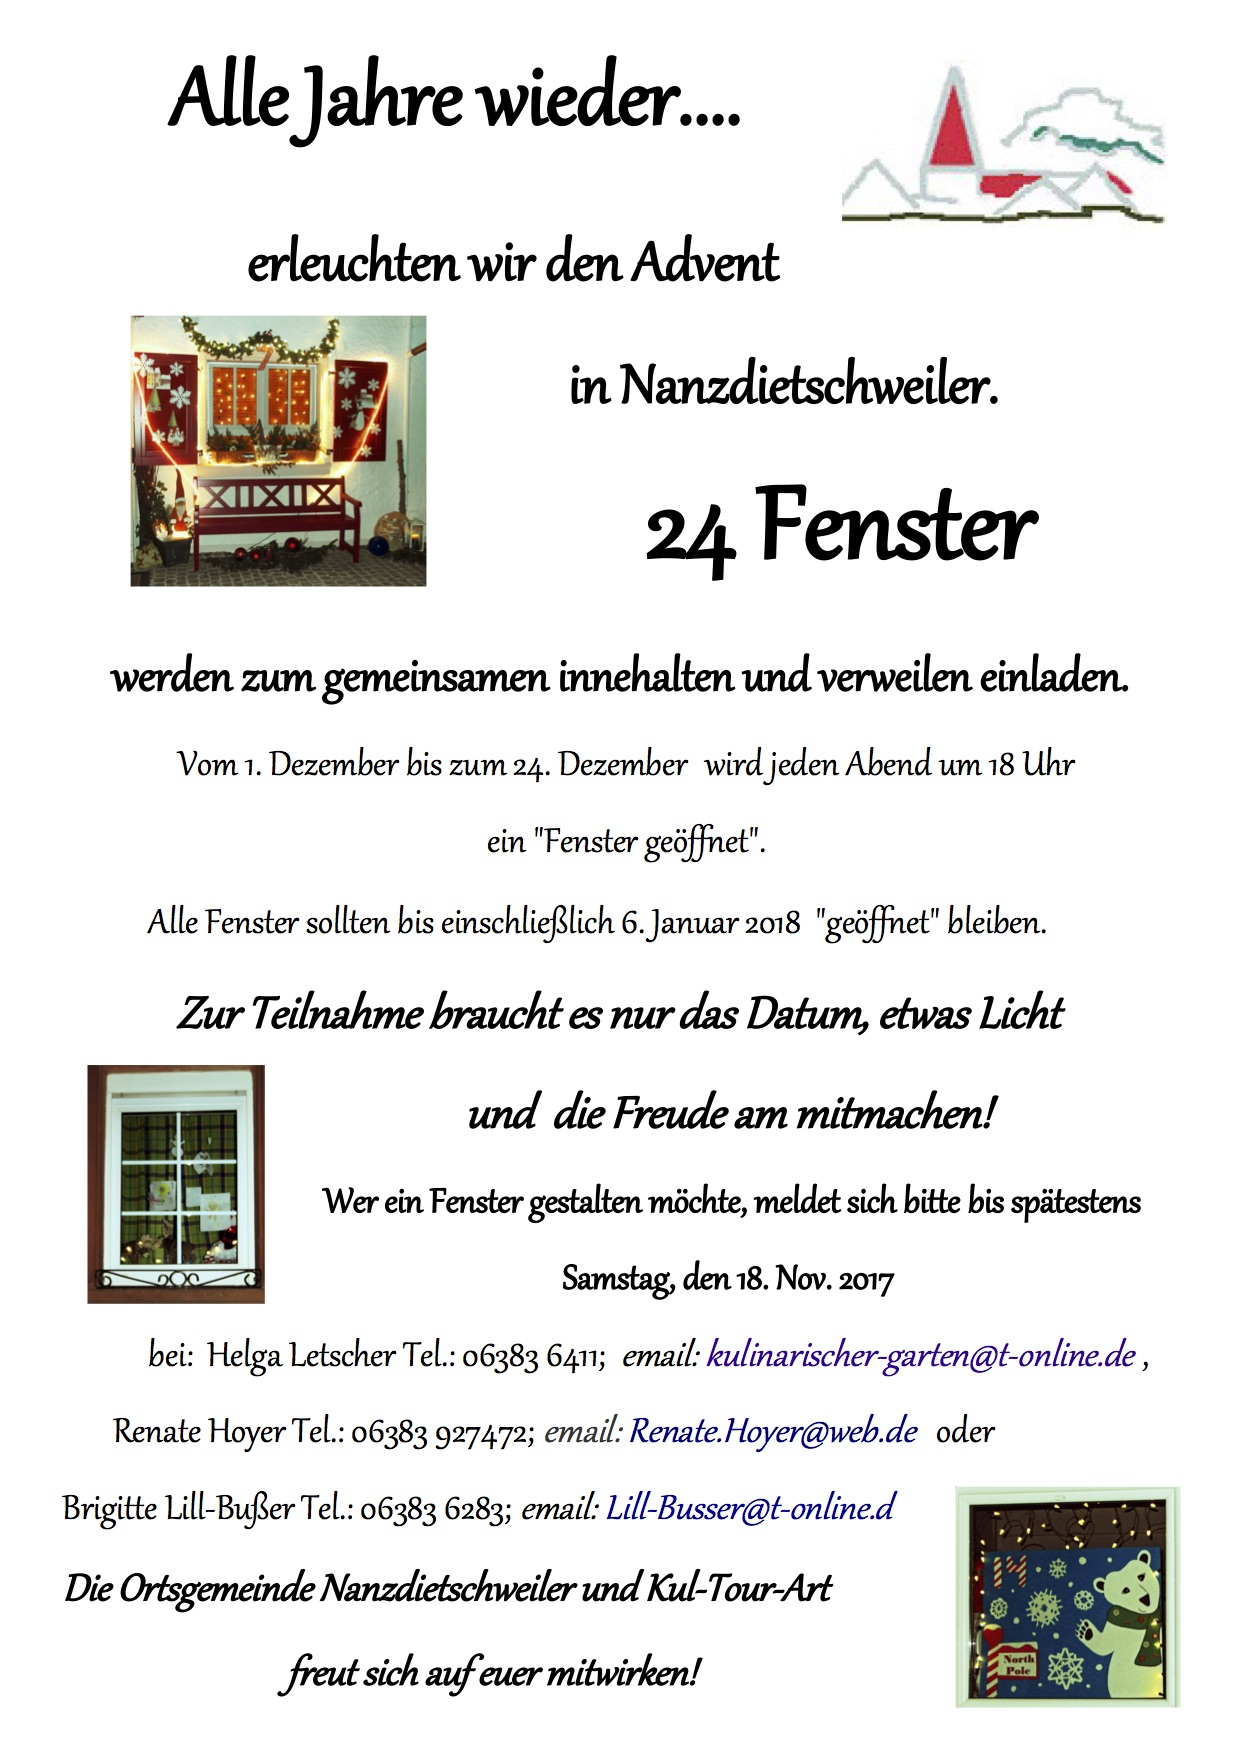 2017 10 14 adventsfensteraktion ger